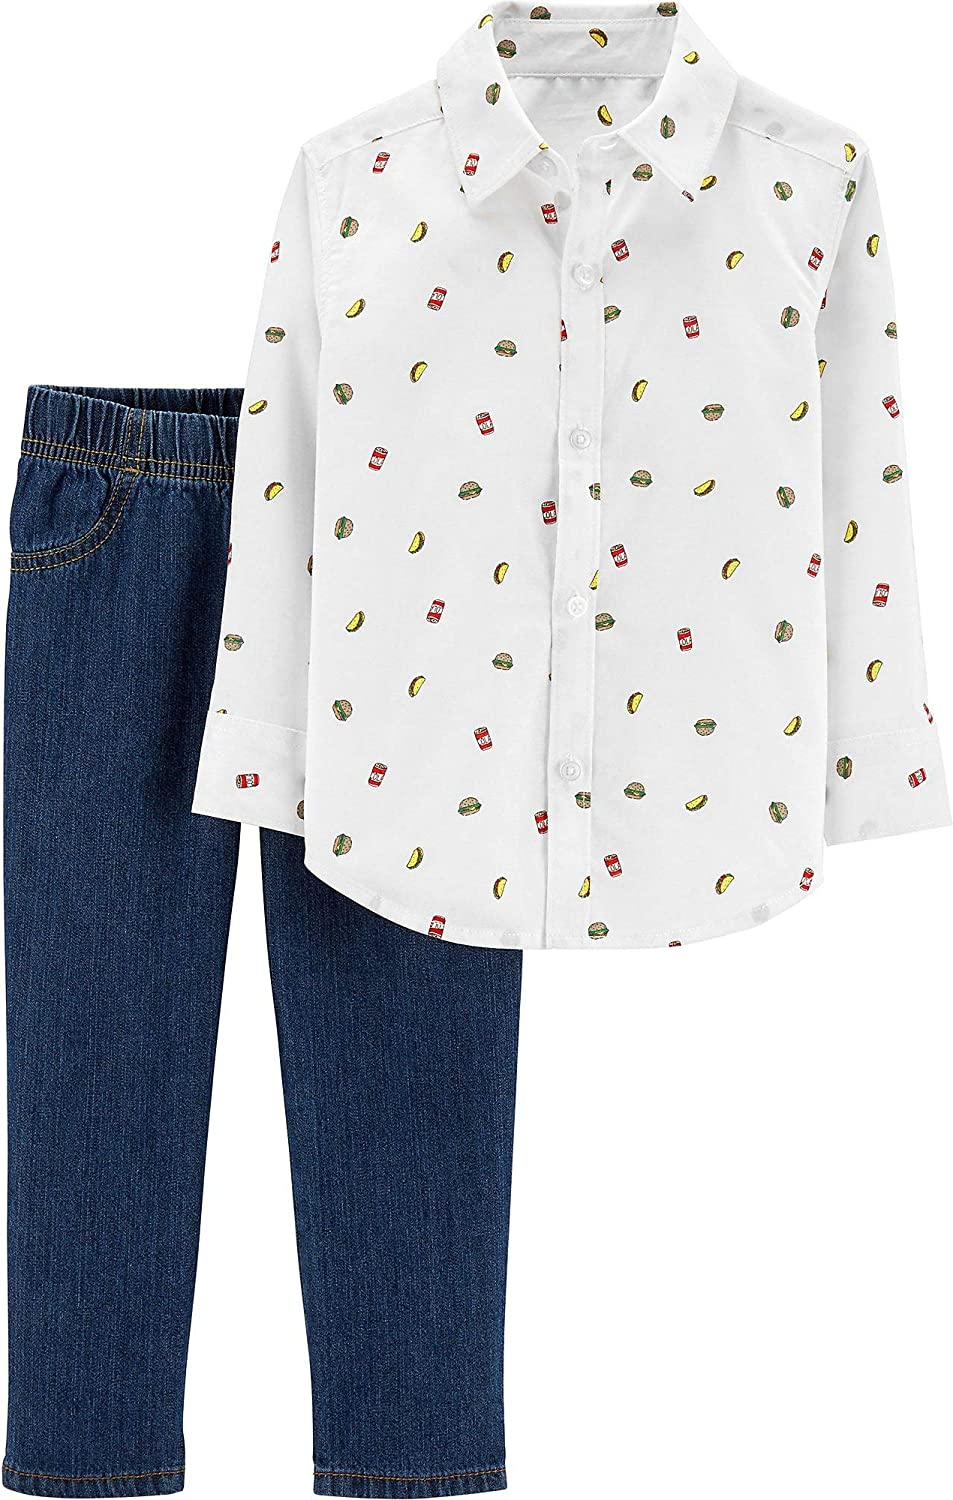 Carter's Baby Boys Fast Food Button Down Jeans Set 24 Months White Multi